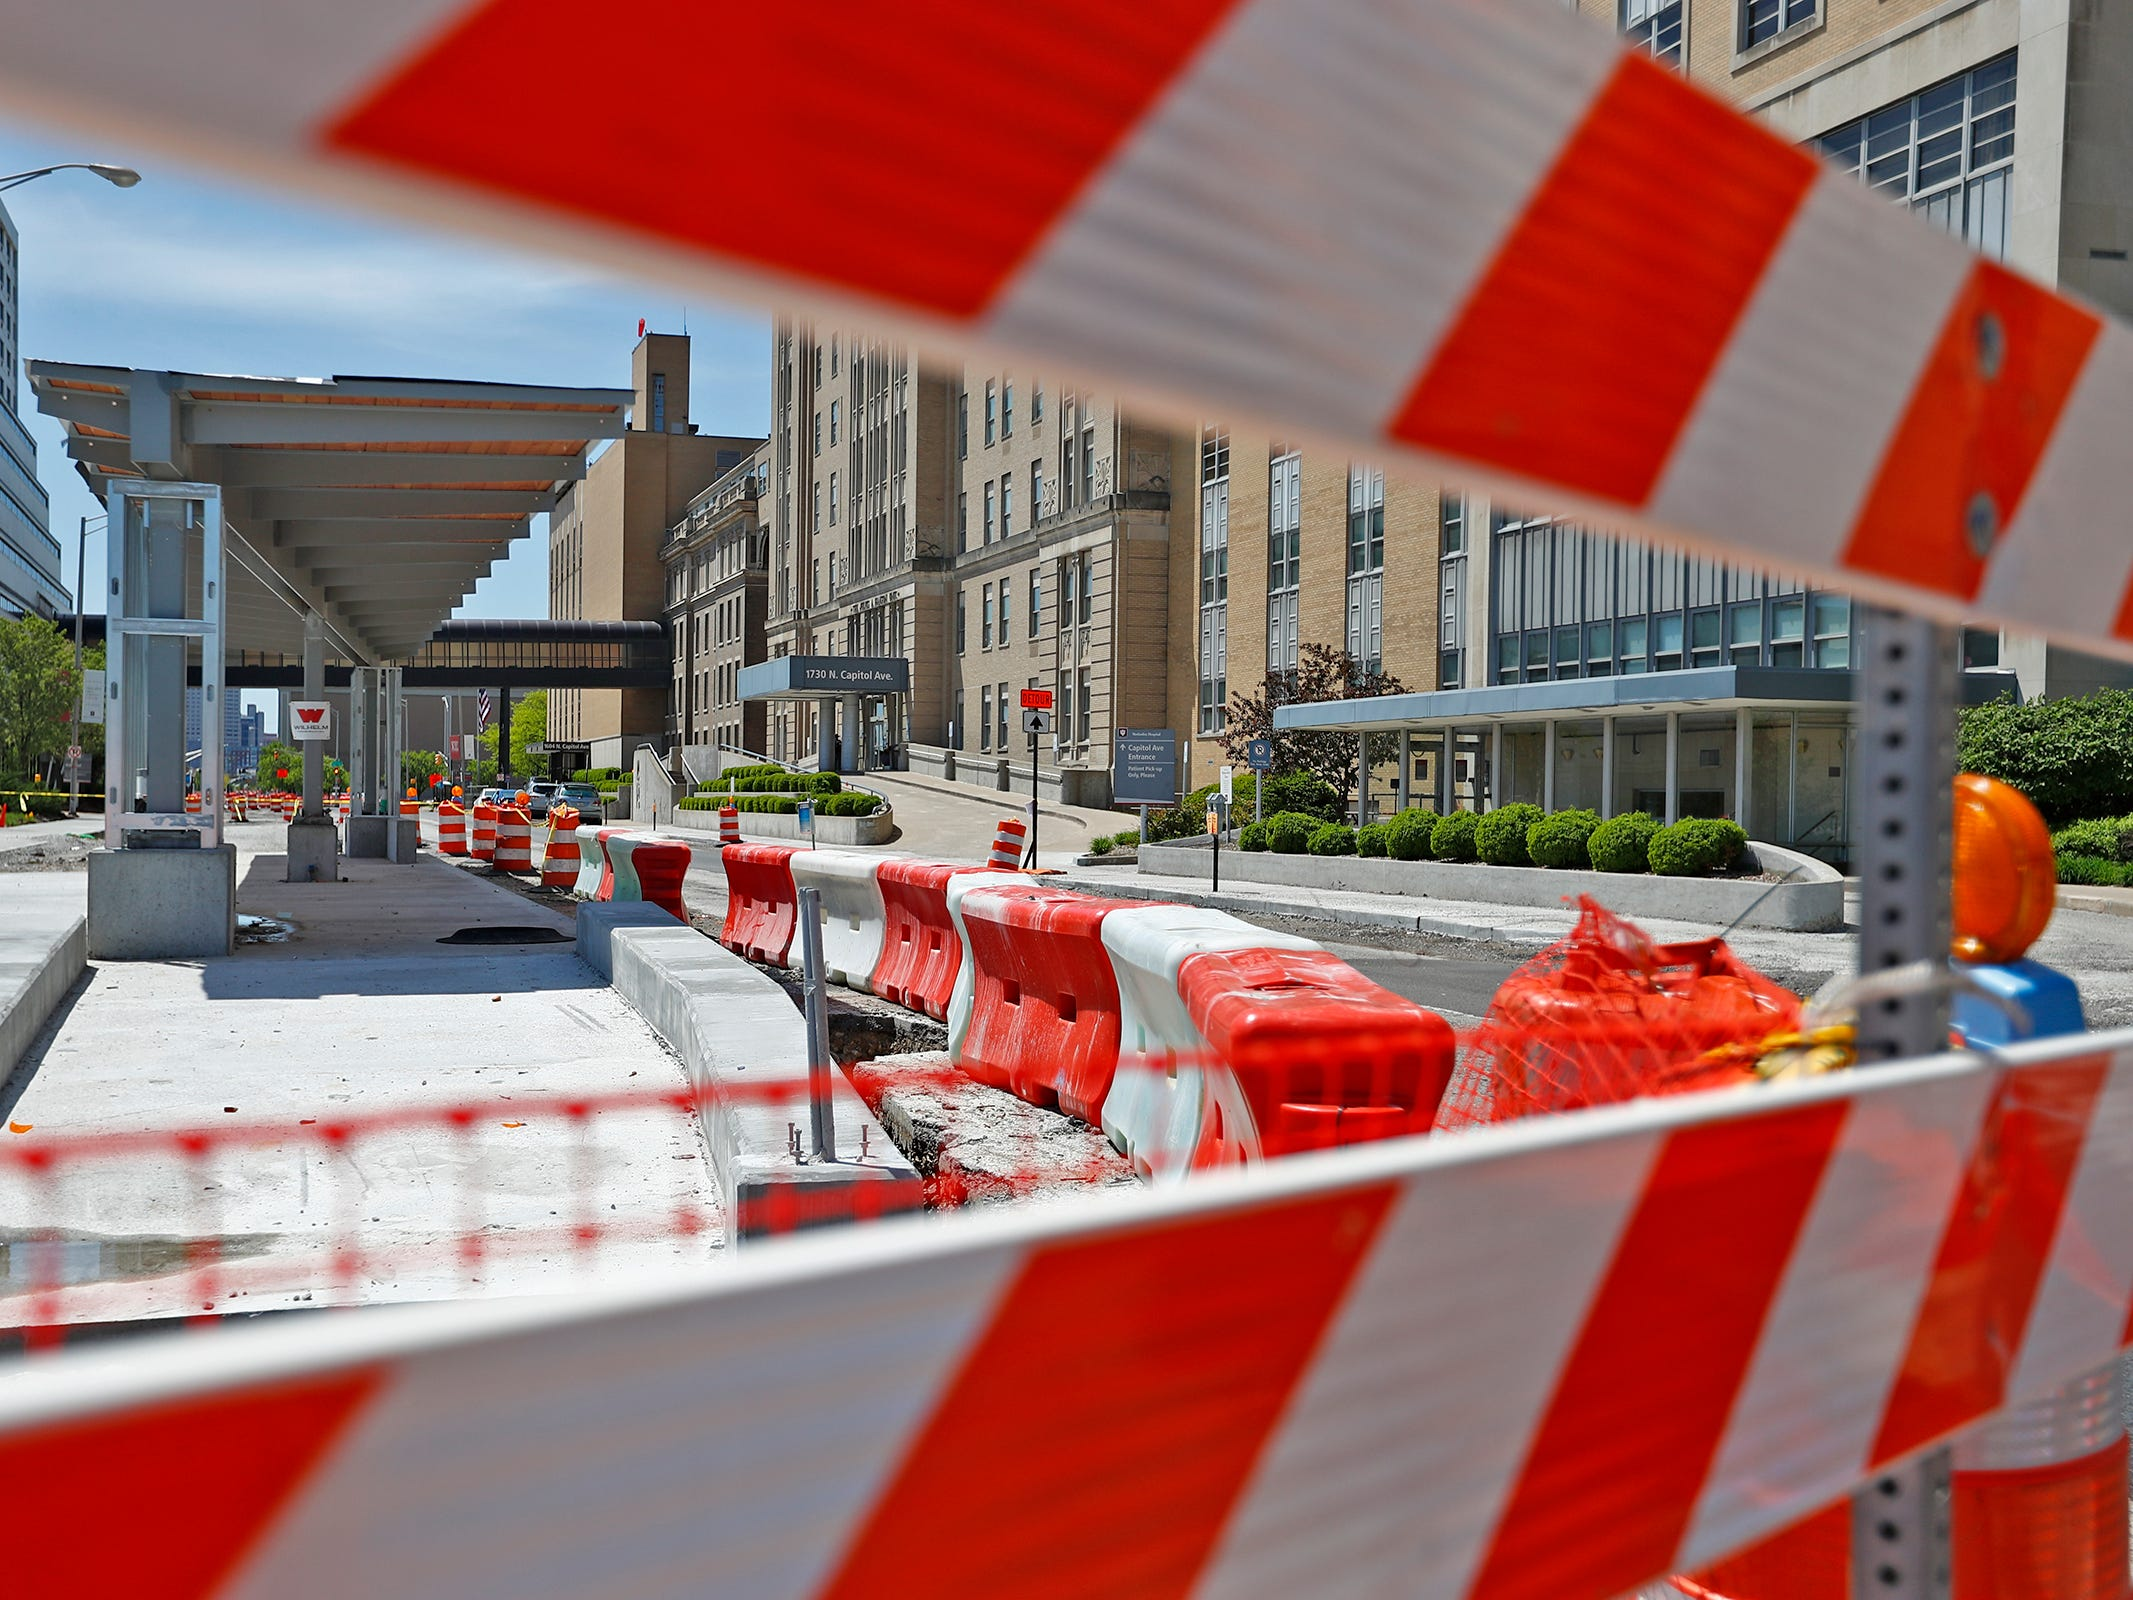 Red Line construction continues in Indianapolis, Sunday, May 5, 2019.  The City has updated the timeline when the Red Line Bus Rapid Transit system should open, which is later in 2019 summer.  This is a station, looking south on Capitol Ave. from 18th St.